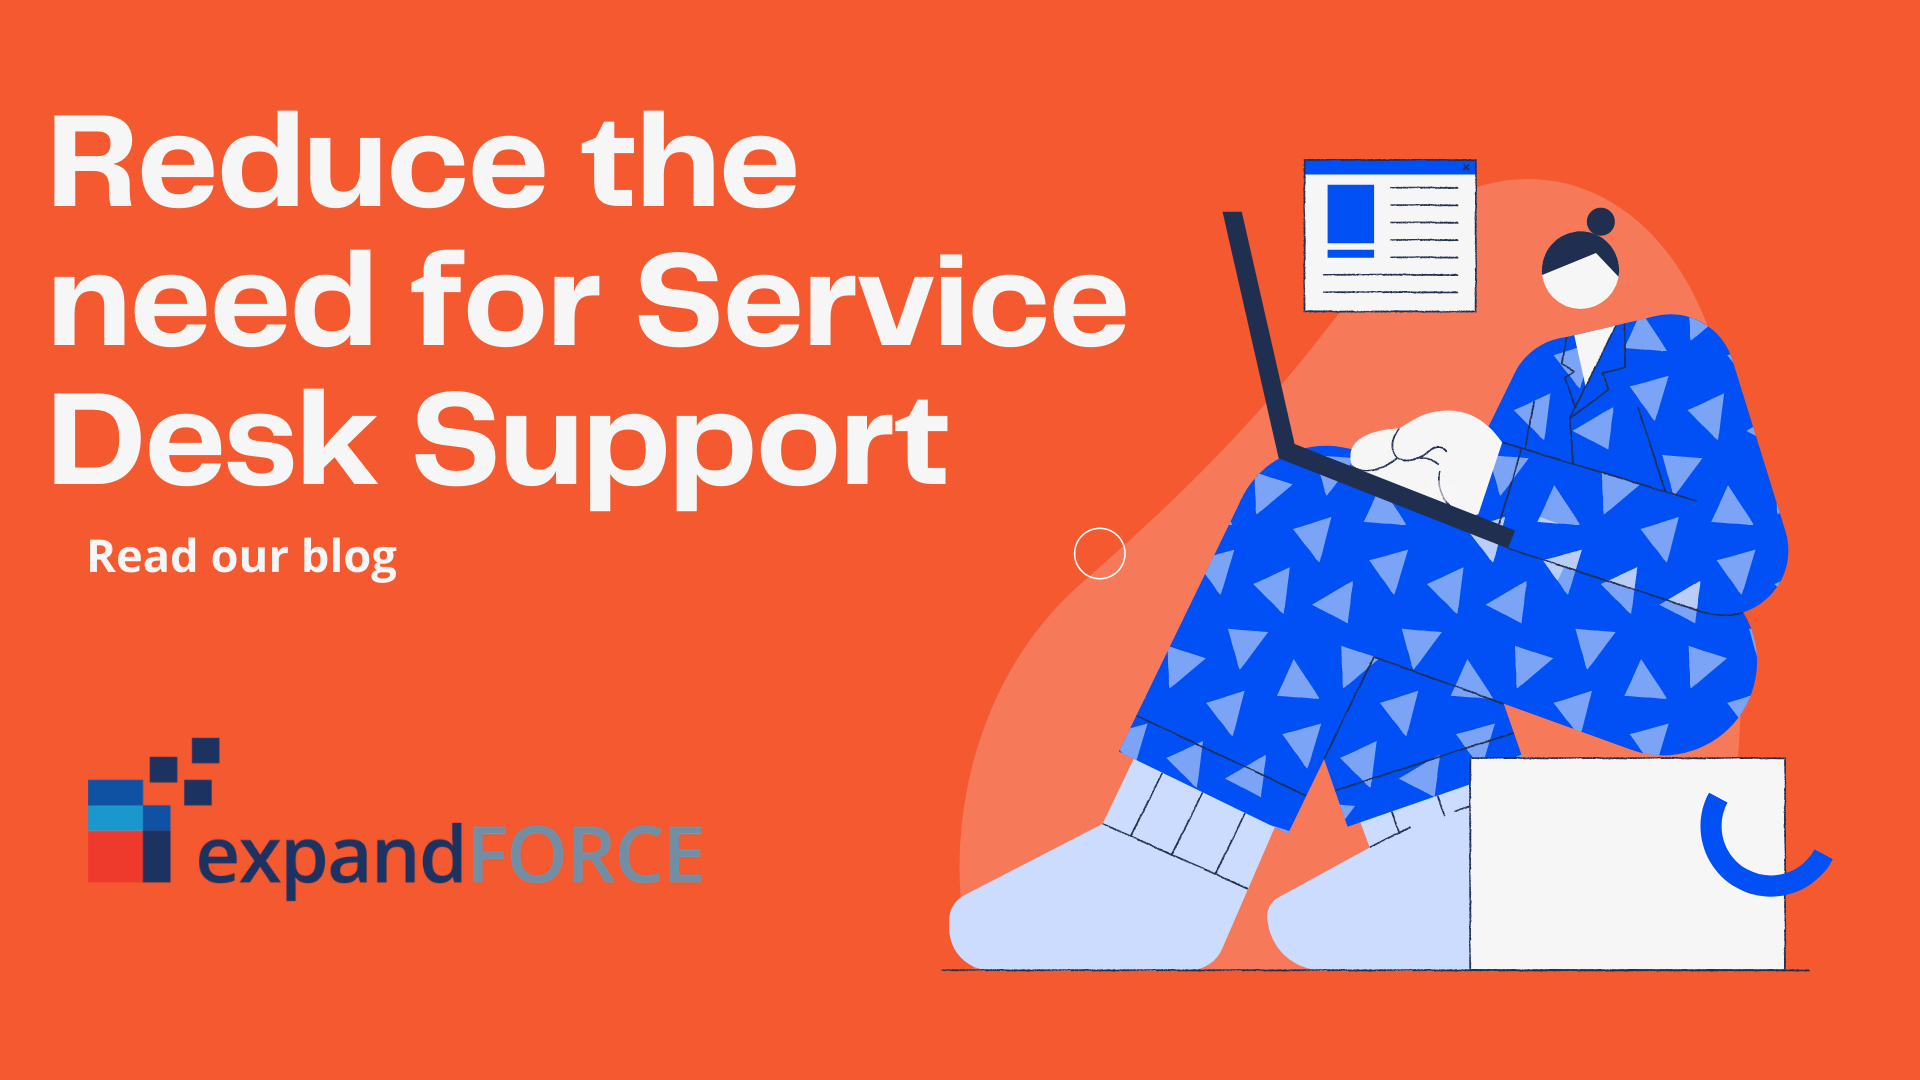 Reducing the need for Service Desk Support using Proactive Interventions, Automation, and Self-Service